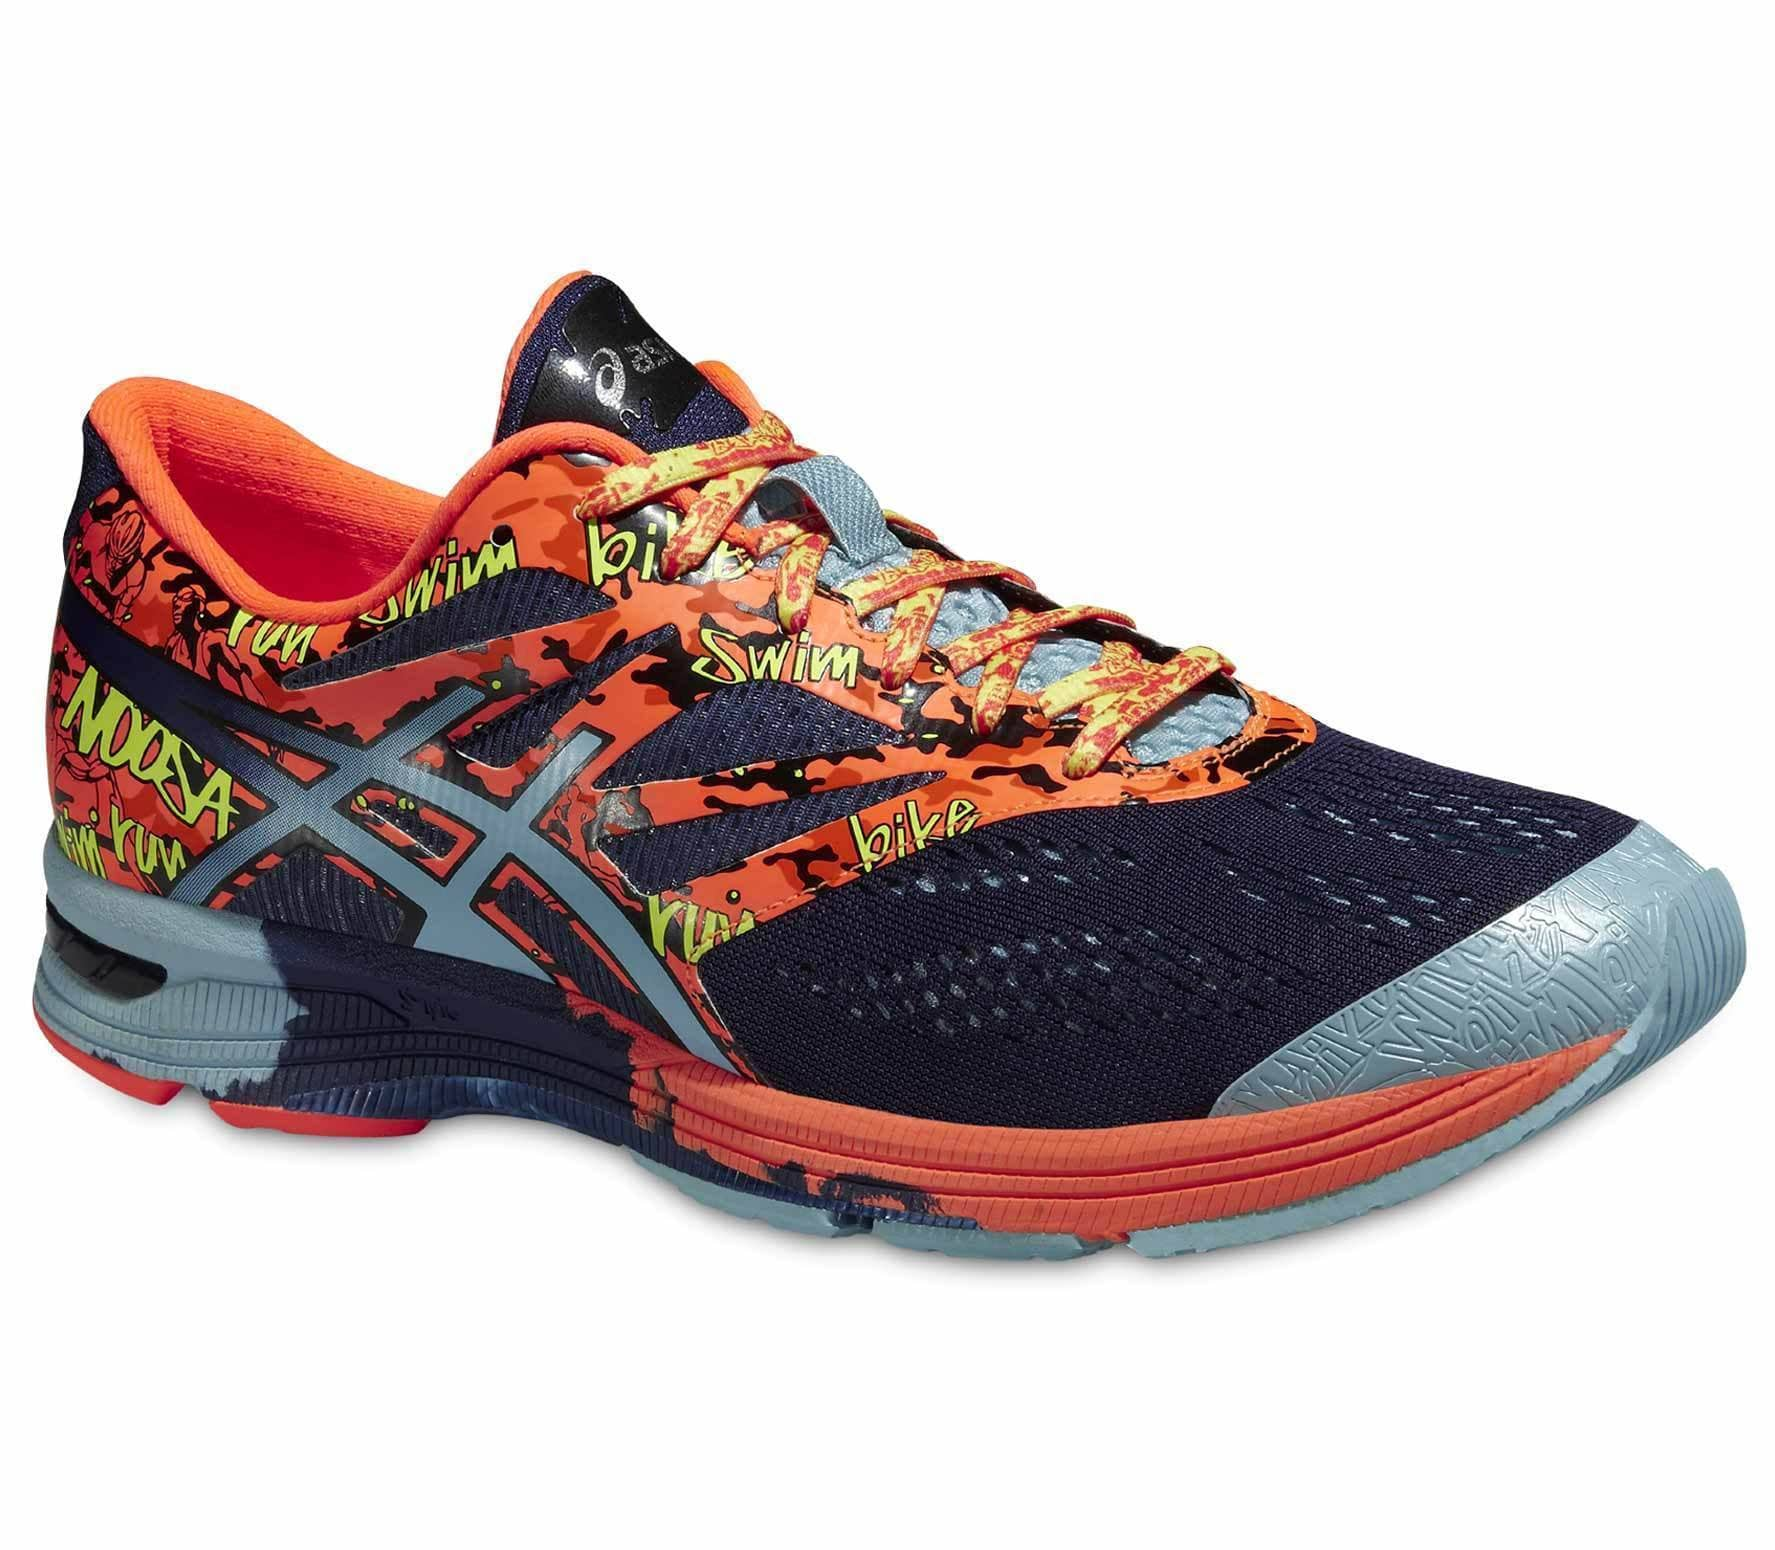 Men's Asics Gel Hommes Running Shoes Noosa 10 Tri ONwm8vn0